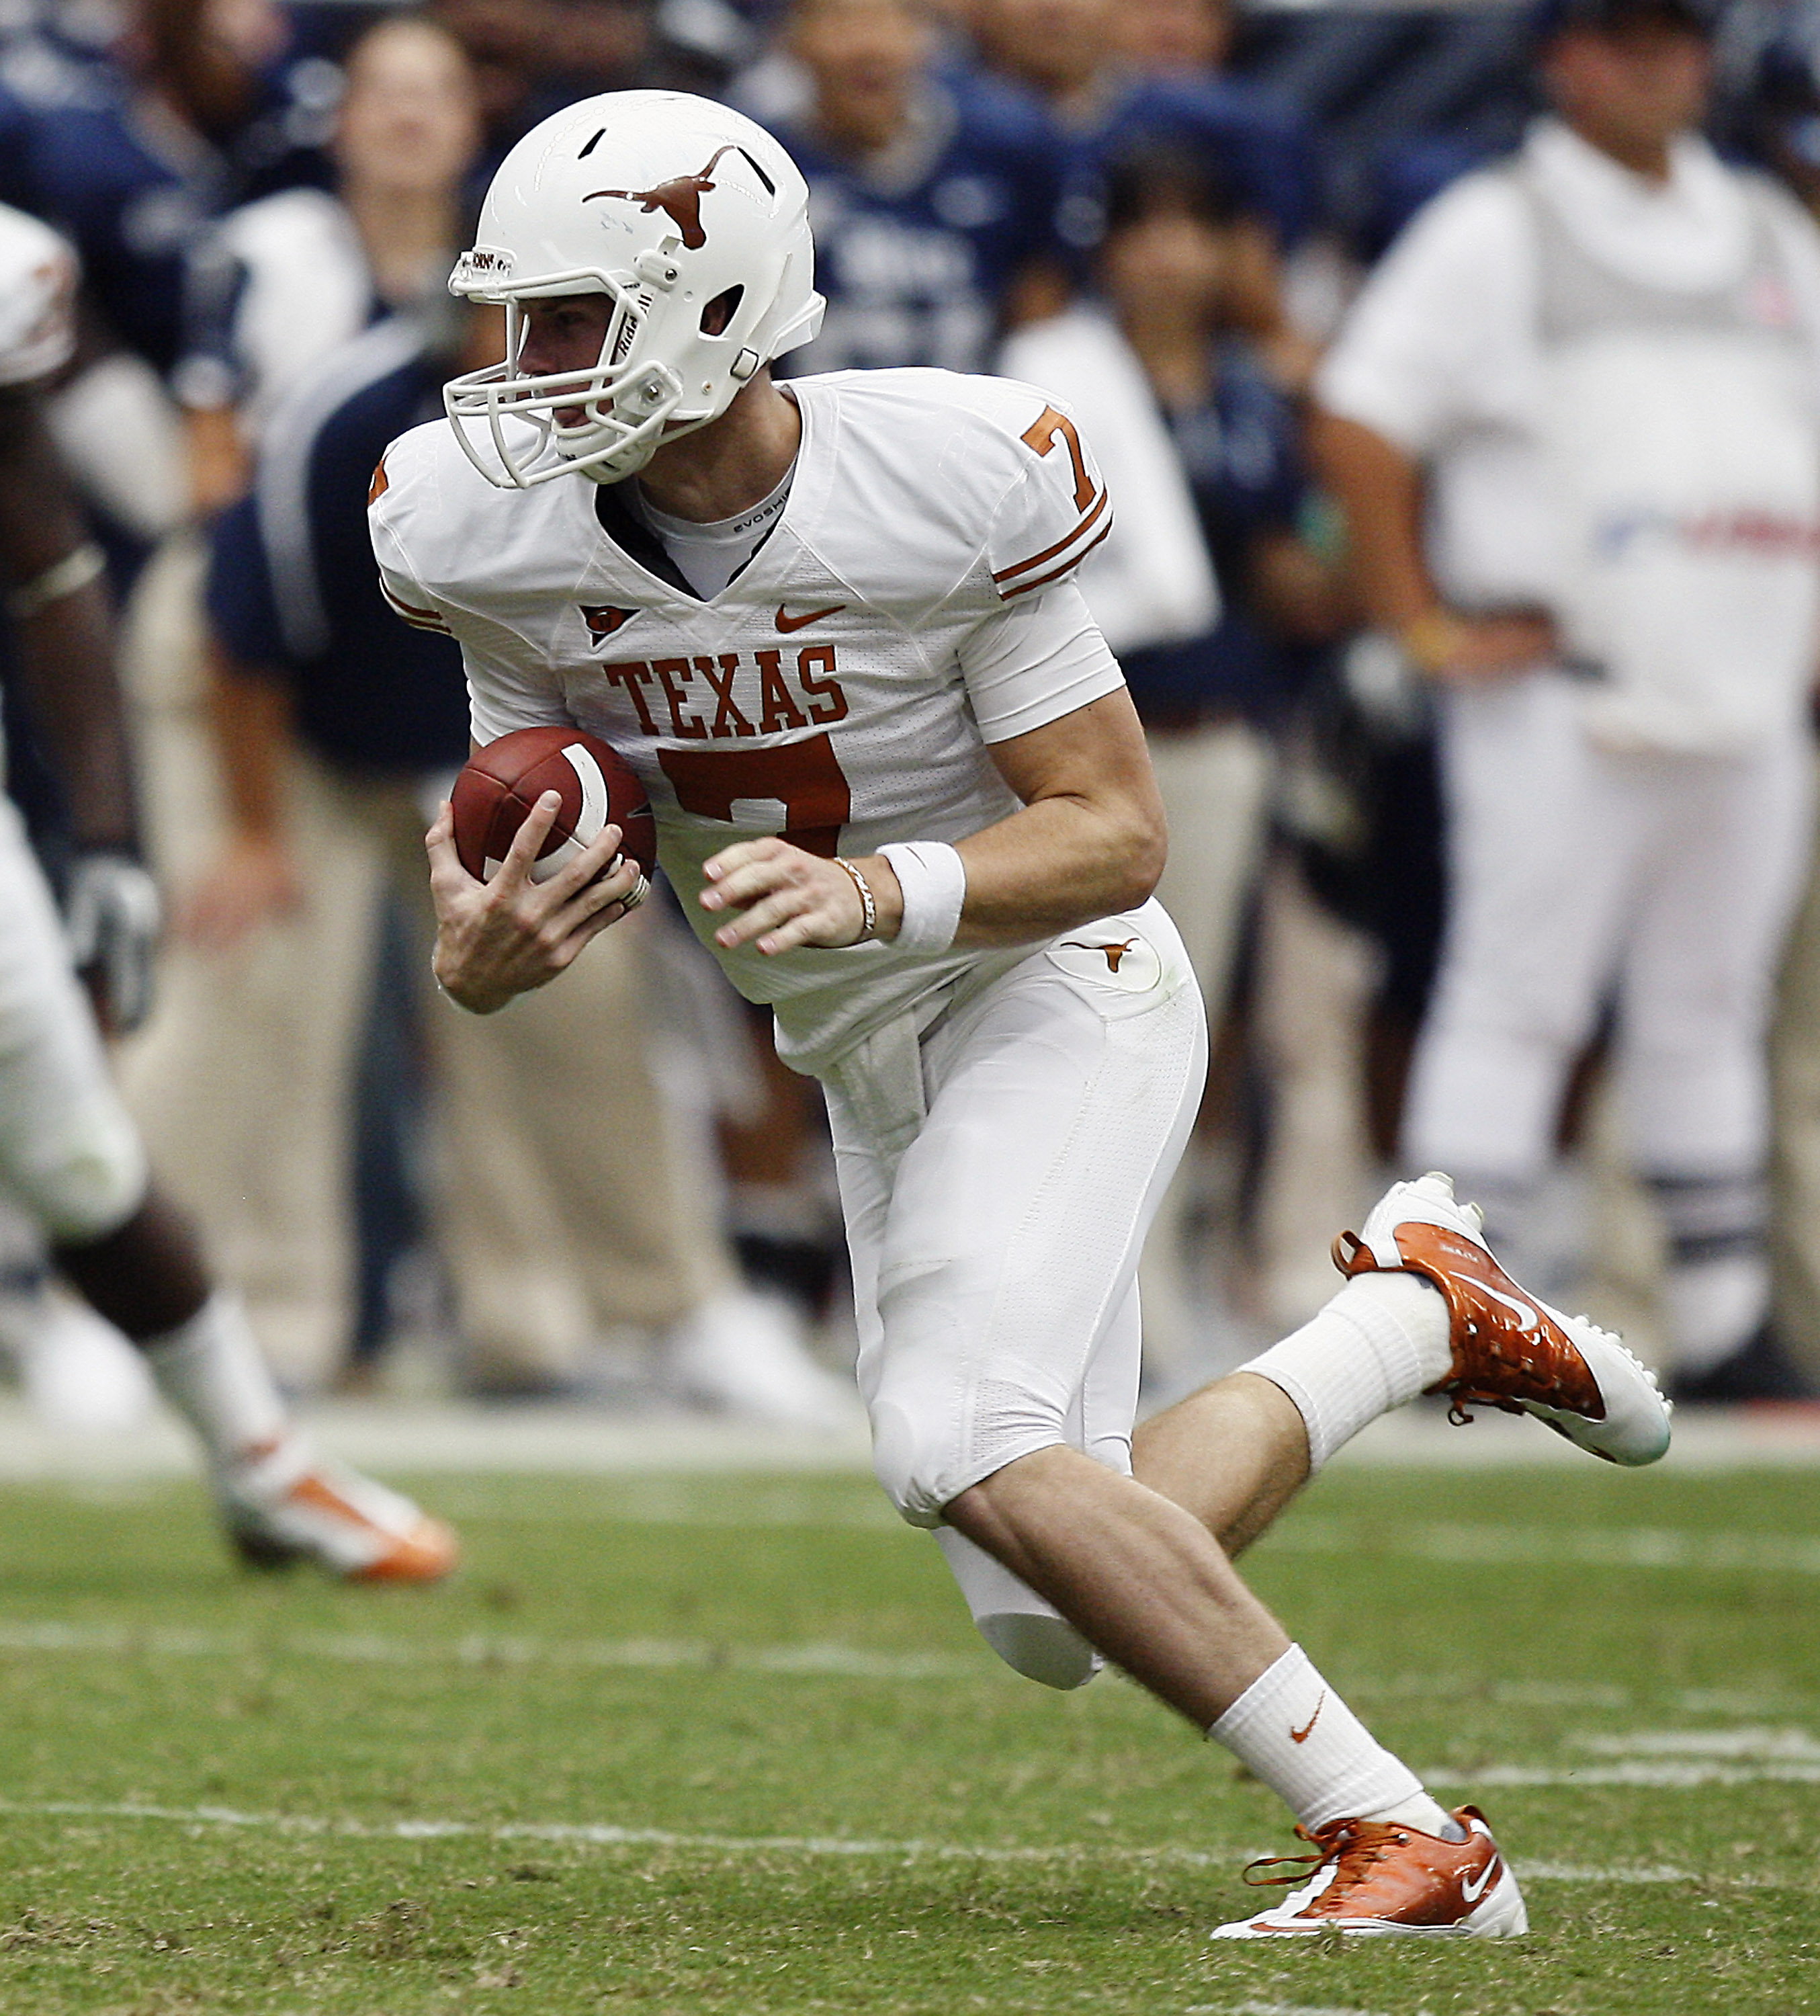 HOUSTON - SEPTEMBER 04:  Quarterback Garrett Gilbert #7 of the Texas Longhorns during game action against the Rice Owls at Reliant Stadium on September 4, 2010 in Houston, Texas. Texas won 34-17.  (Photo by Bob Levey/Getty Images)